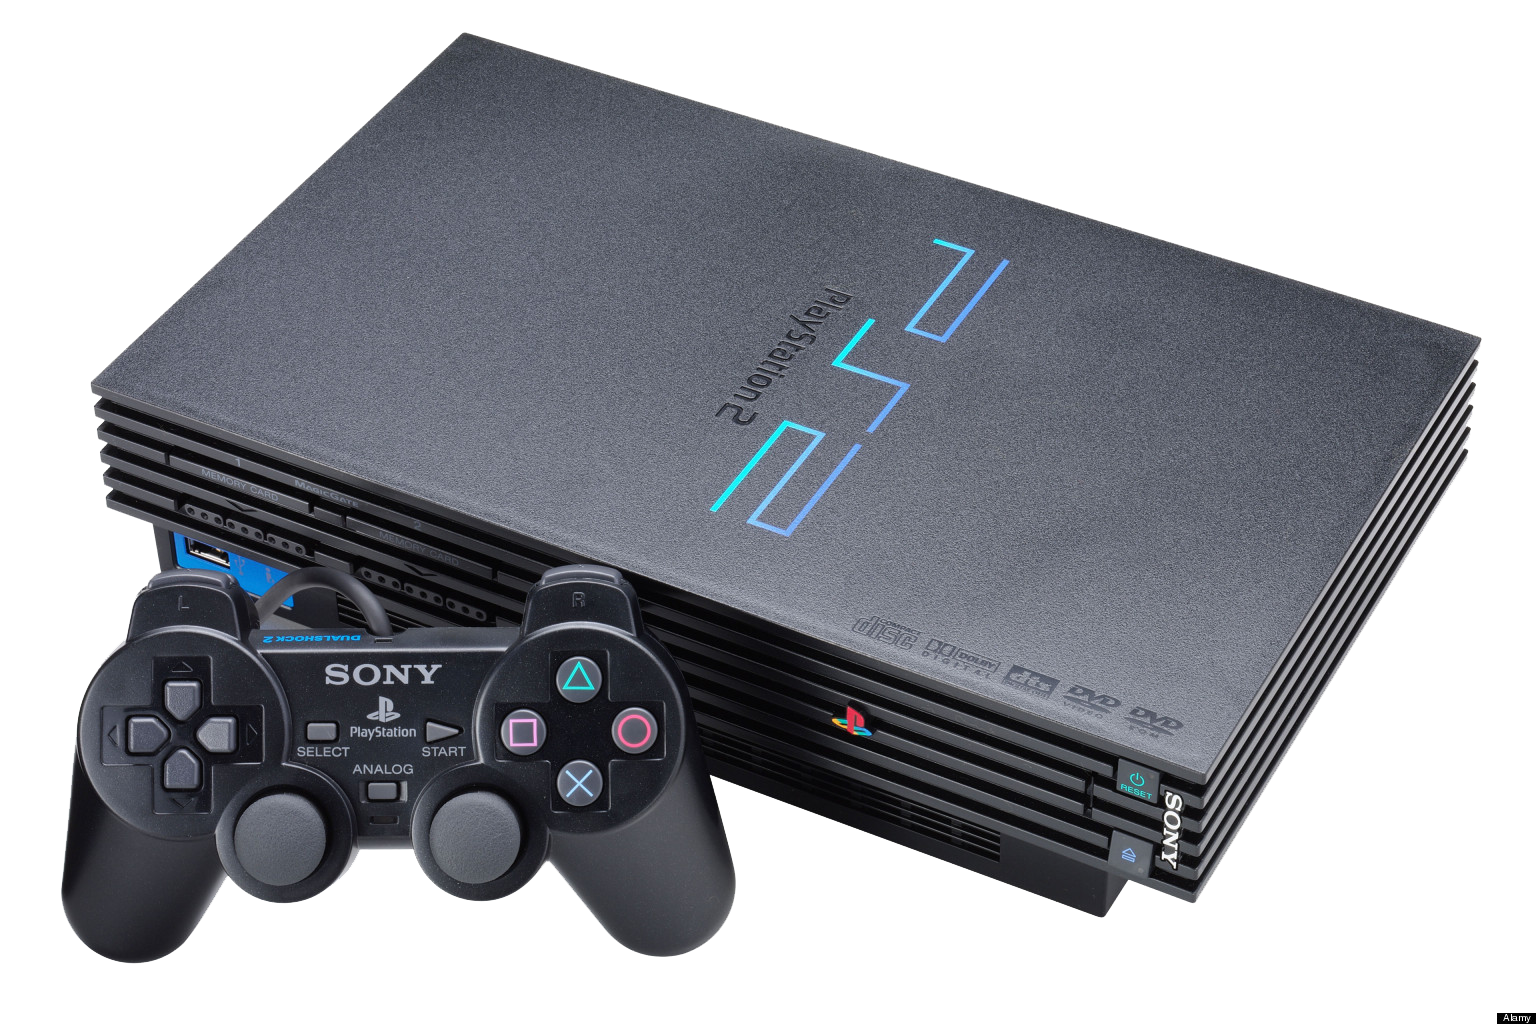 Playstation 2 png. Transparent images all clipart